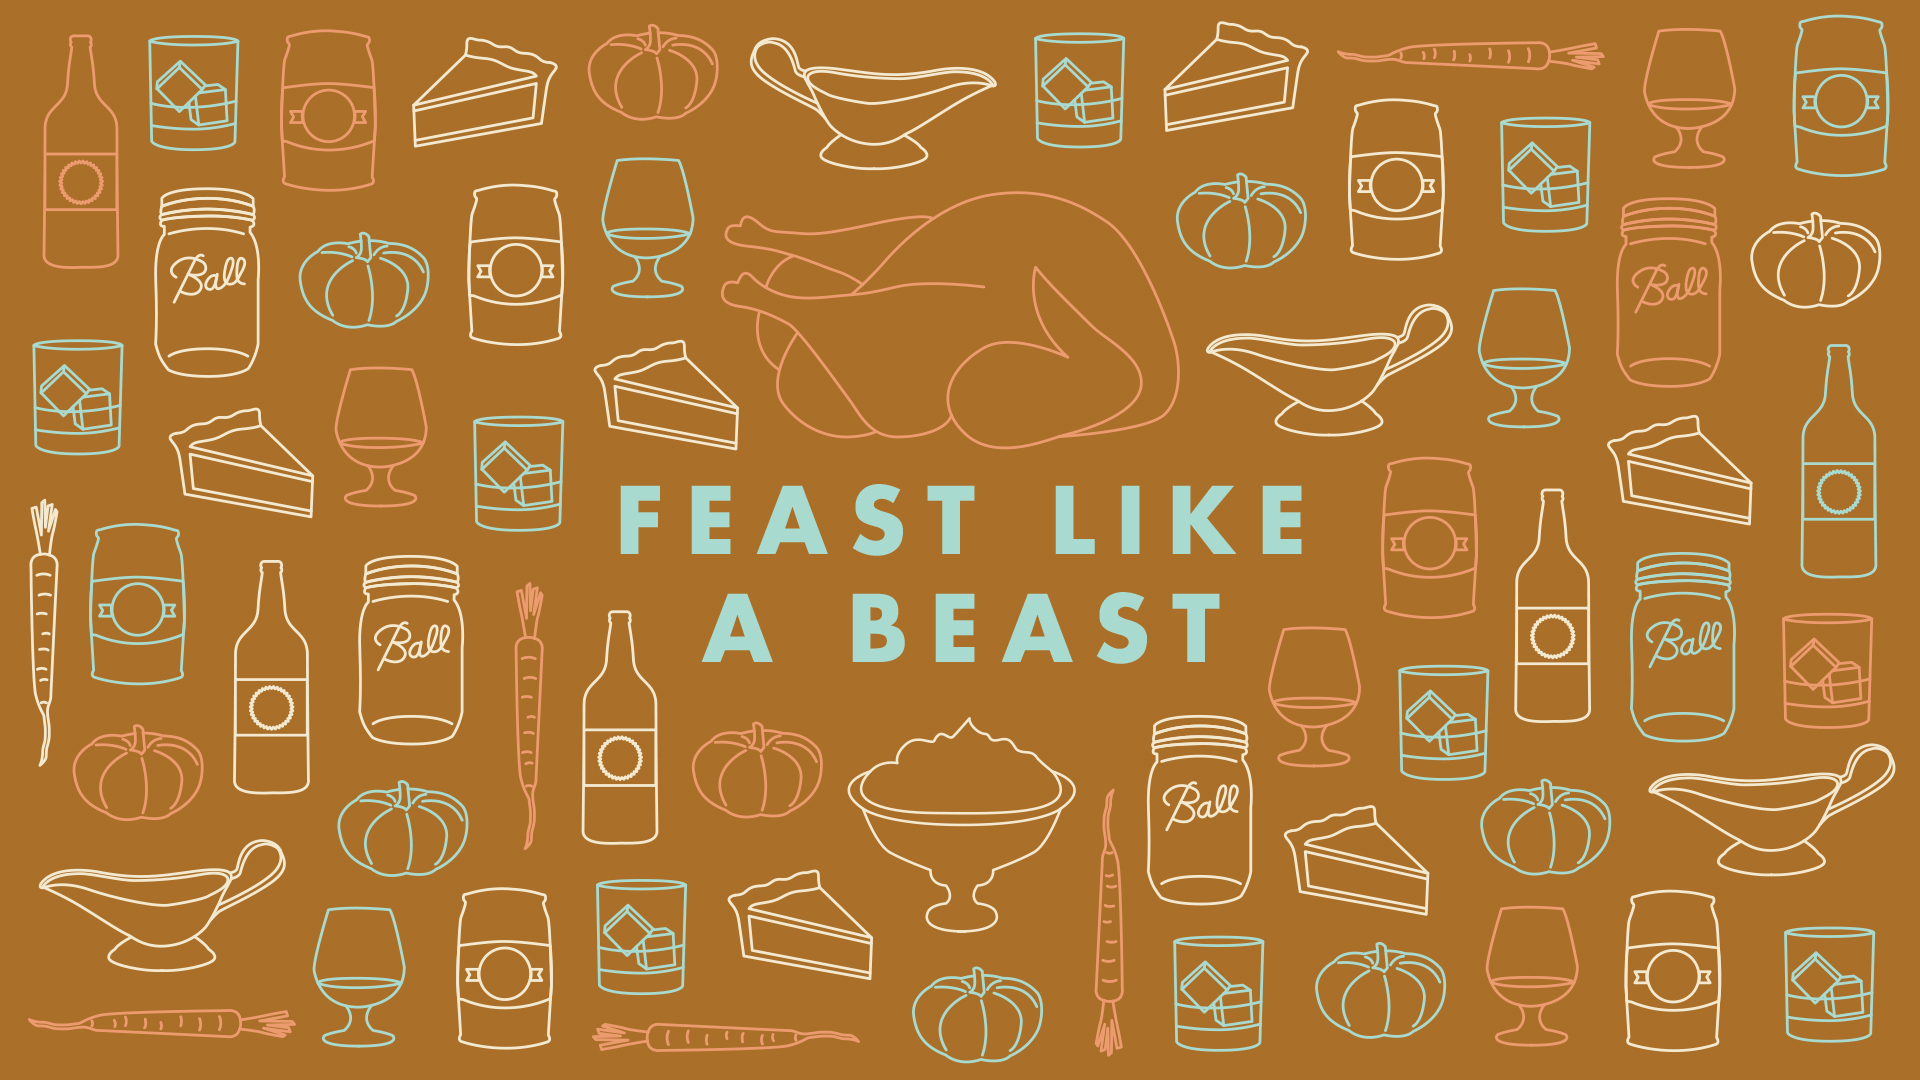 Feast Like a Beast desktop wallpaper | Freckle & Fair